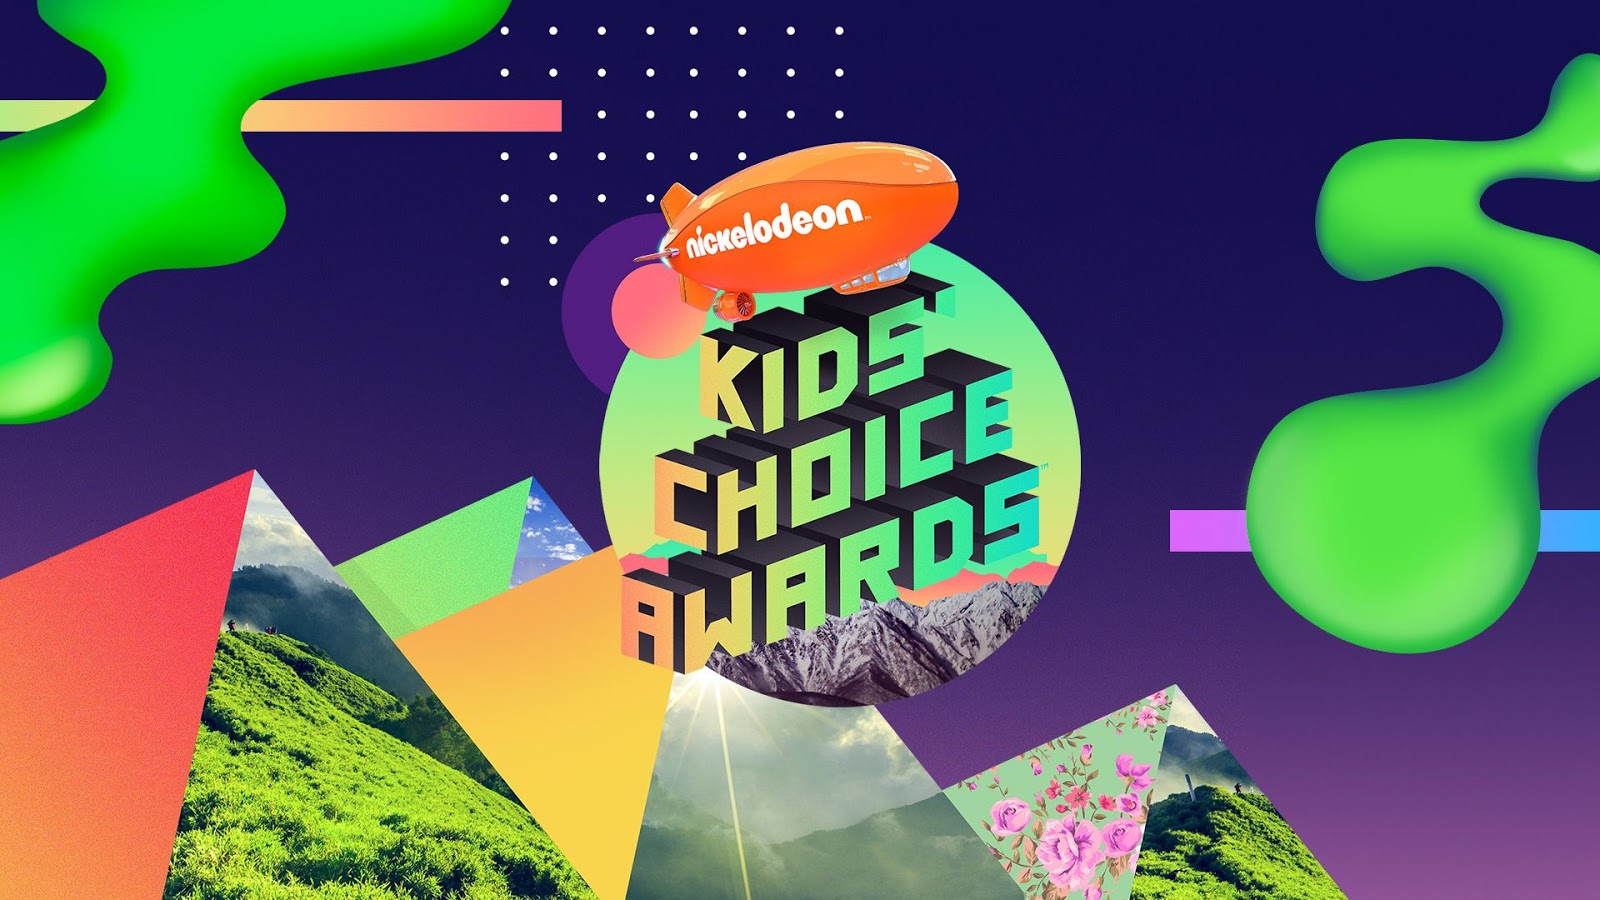 Ekspresi Pemenang Nickelodeon Kid's Choice Awards Saat Disiram Slime Hijau